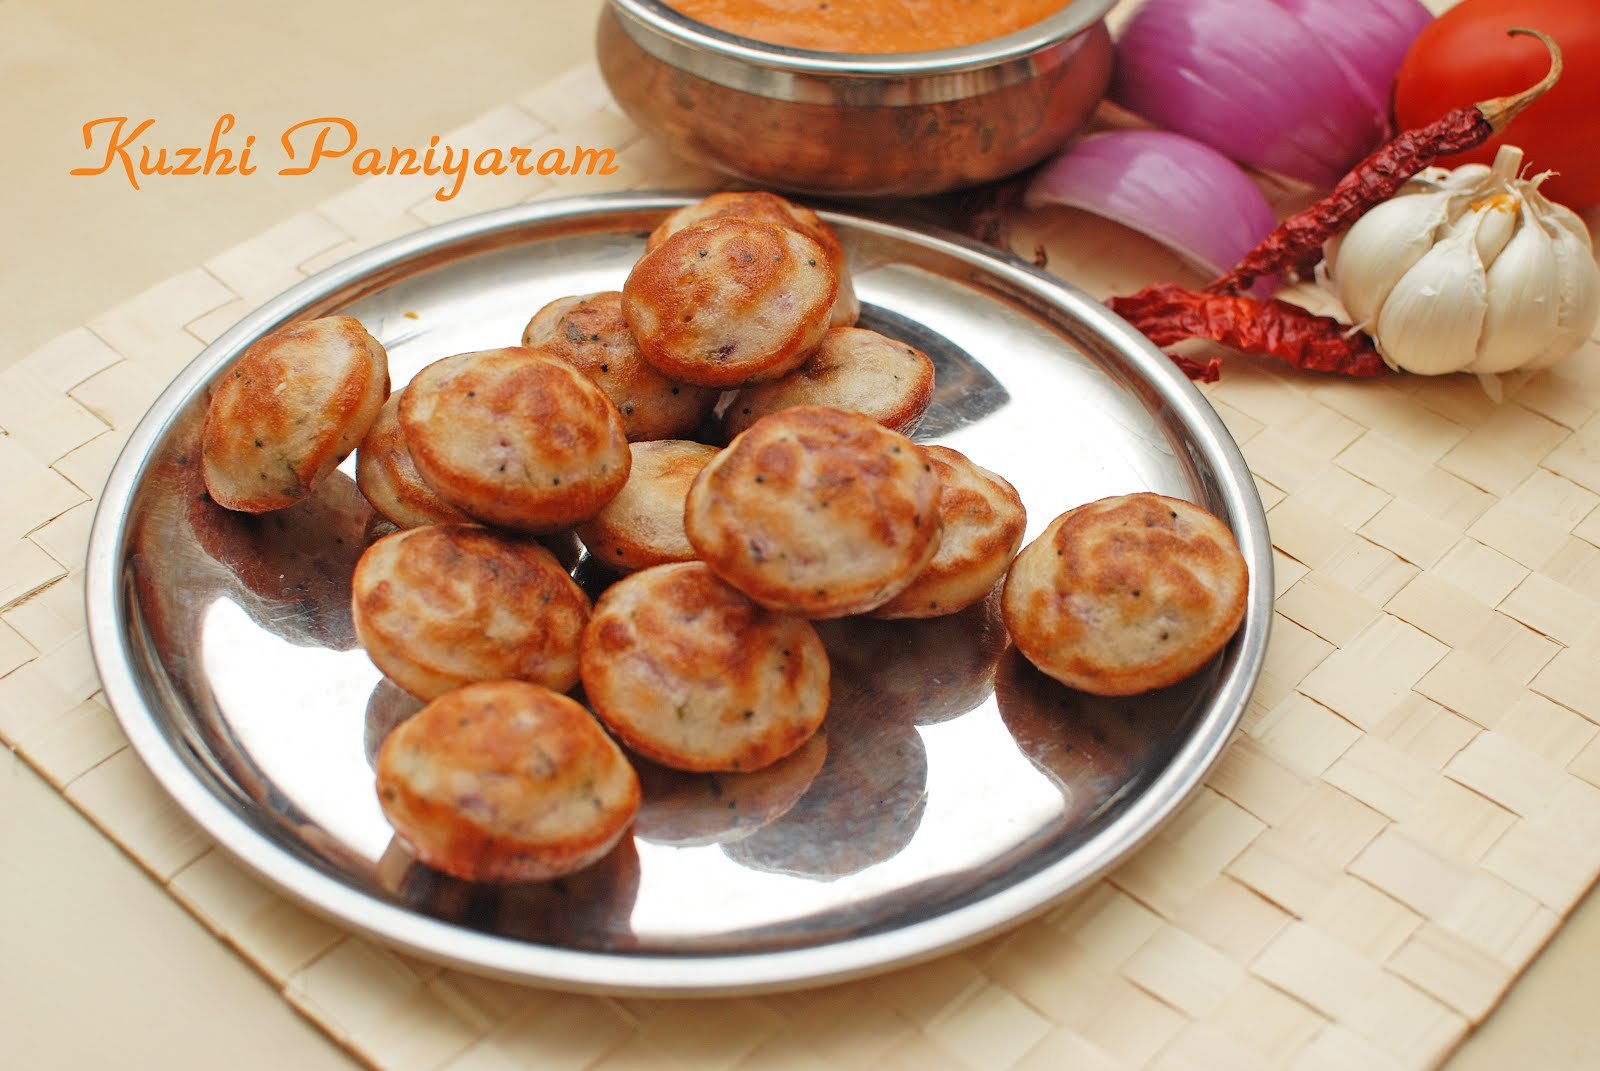 Chettinad kuzhi paniyaram indian breakfastdinner recipe from kuzhi paniyaram forumfinder